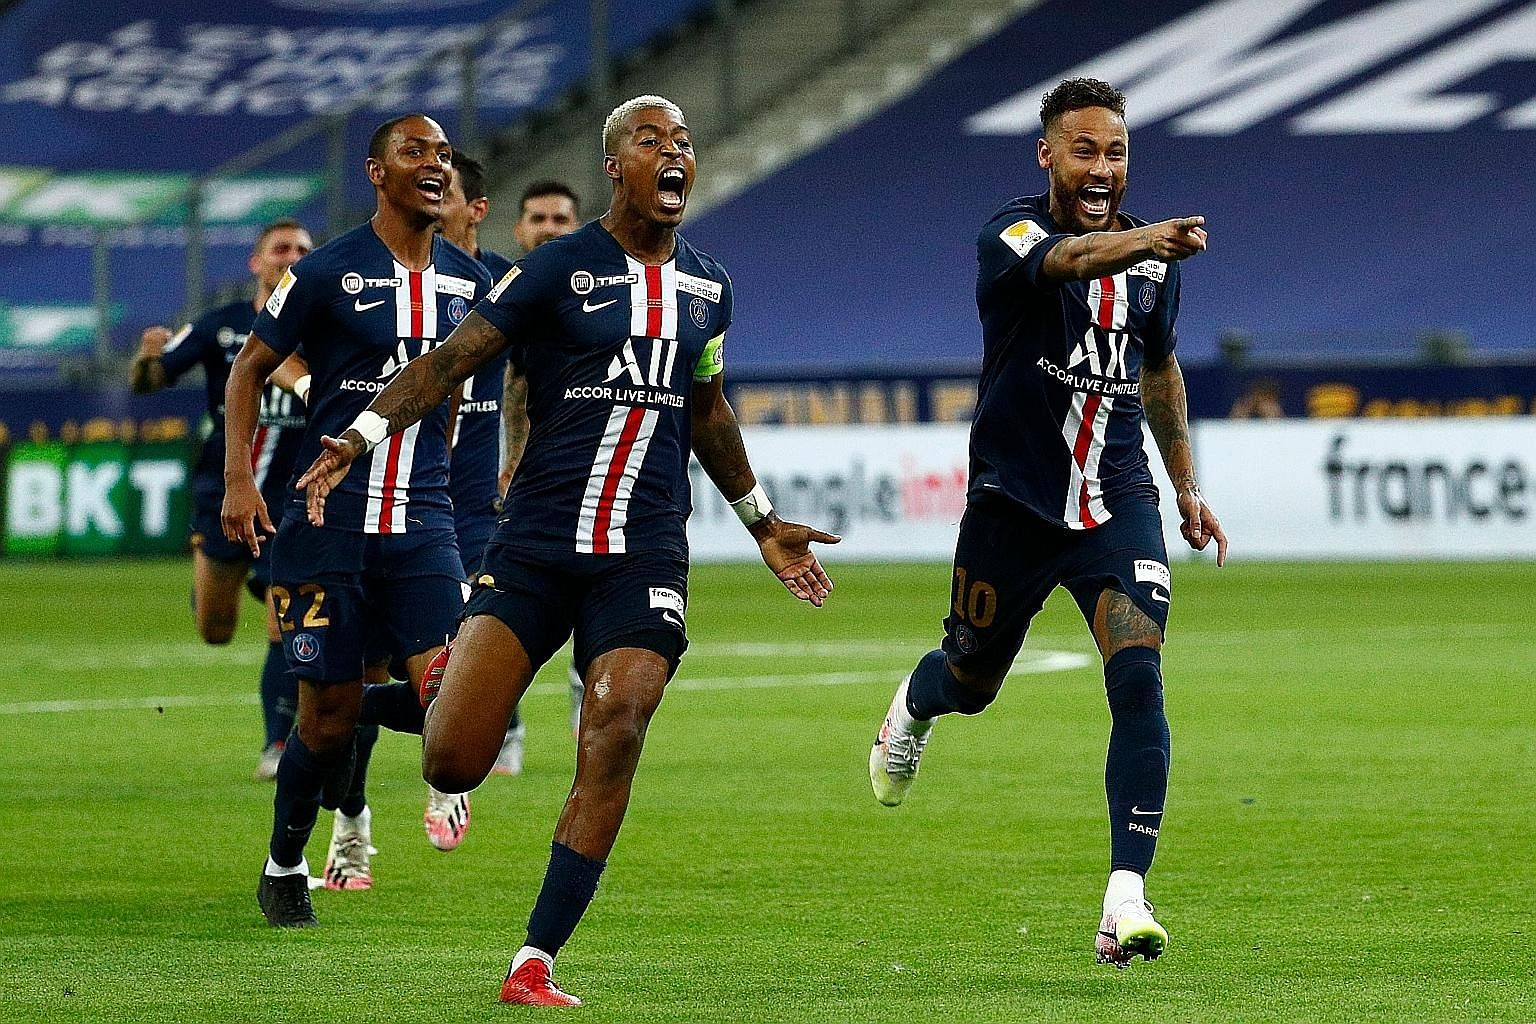 PSG forward Neymar (right) and teammates celebrating their French League Cup final win over Lyon at the Stade de France last month.